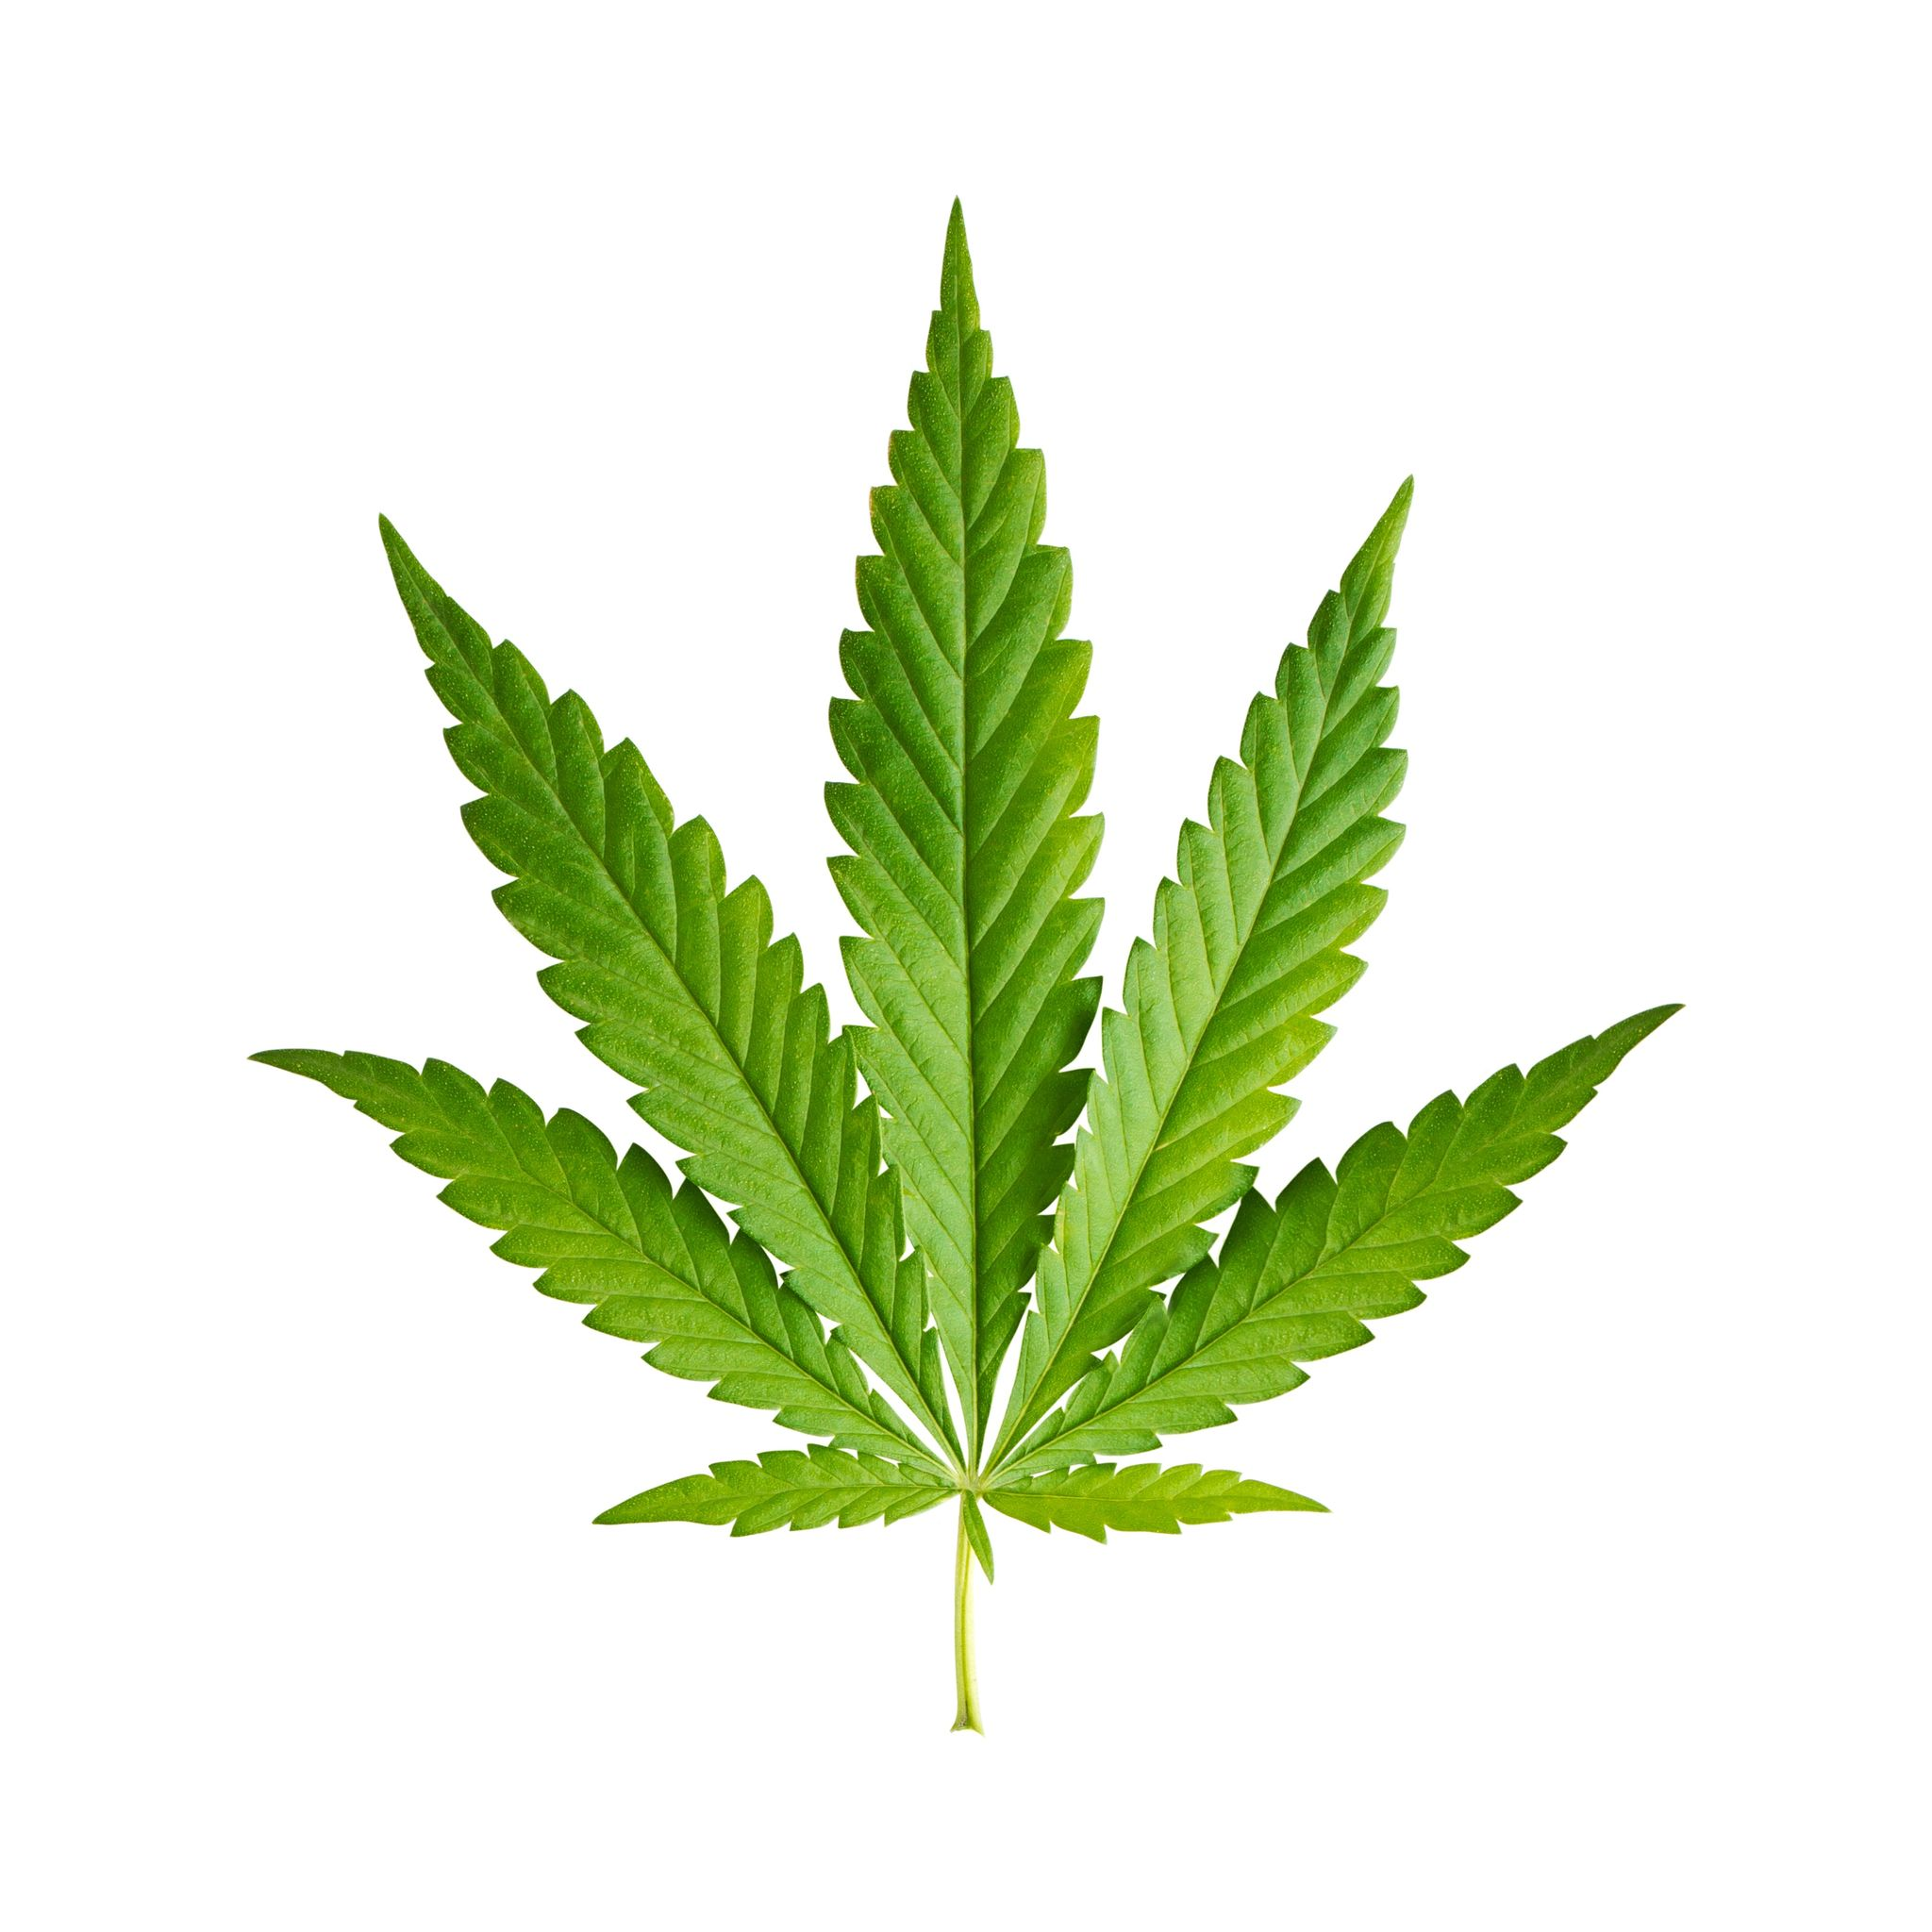 15890419 – cannabis leaf isolated on white background